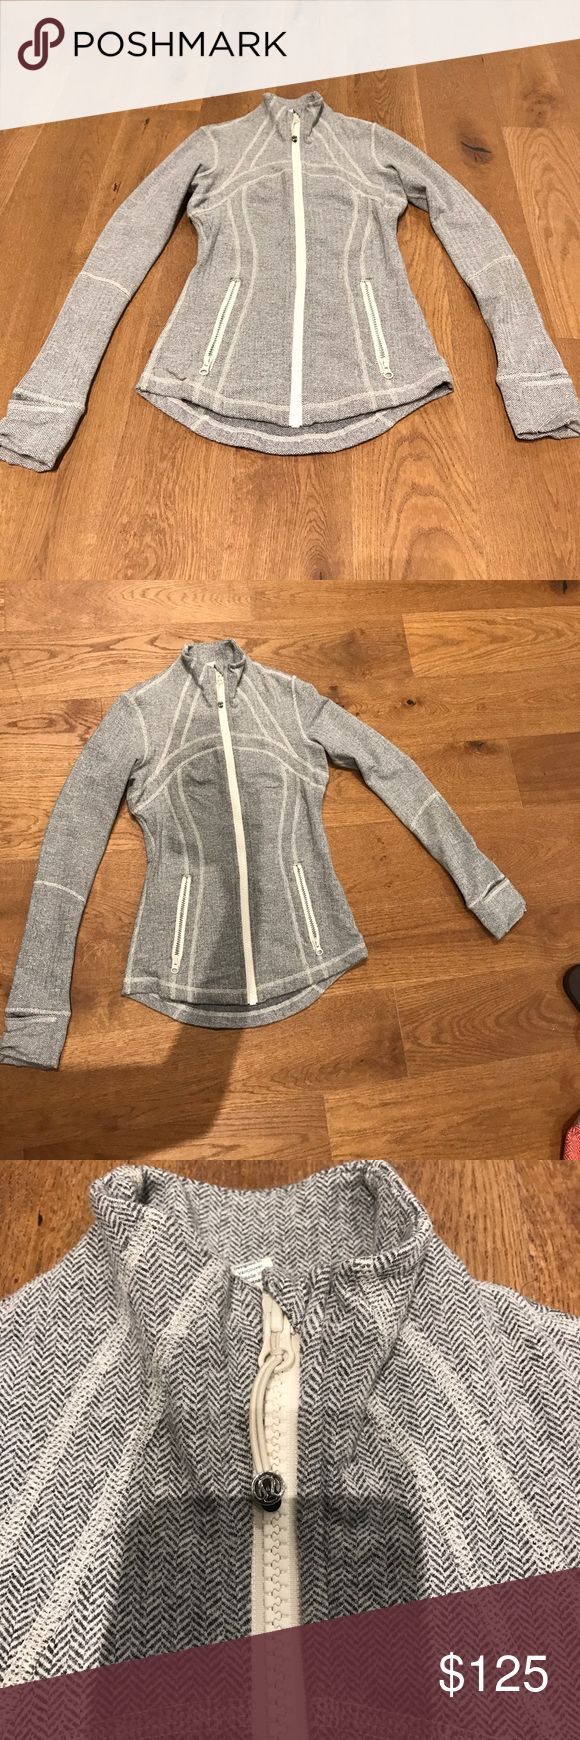 Lululemon herringbone define jacket Iconic herringbone Lululemon zip up jacket. Good condition. Super soft inside and ultra swimming. Thumb holes and fold over mitten covers. No pilling no stains no rips. Only worn a few times lululemon athletica Jackets & Coats